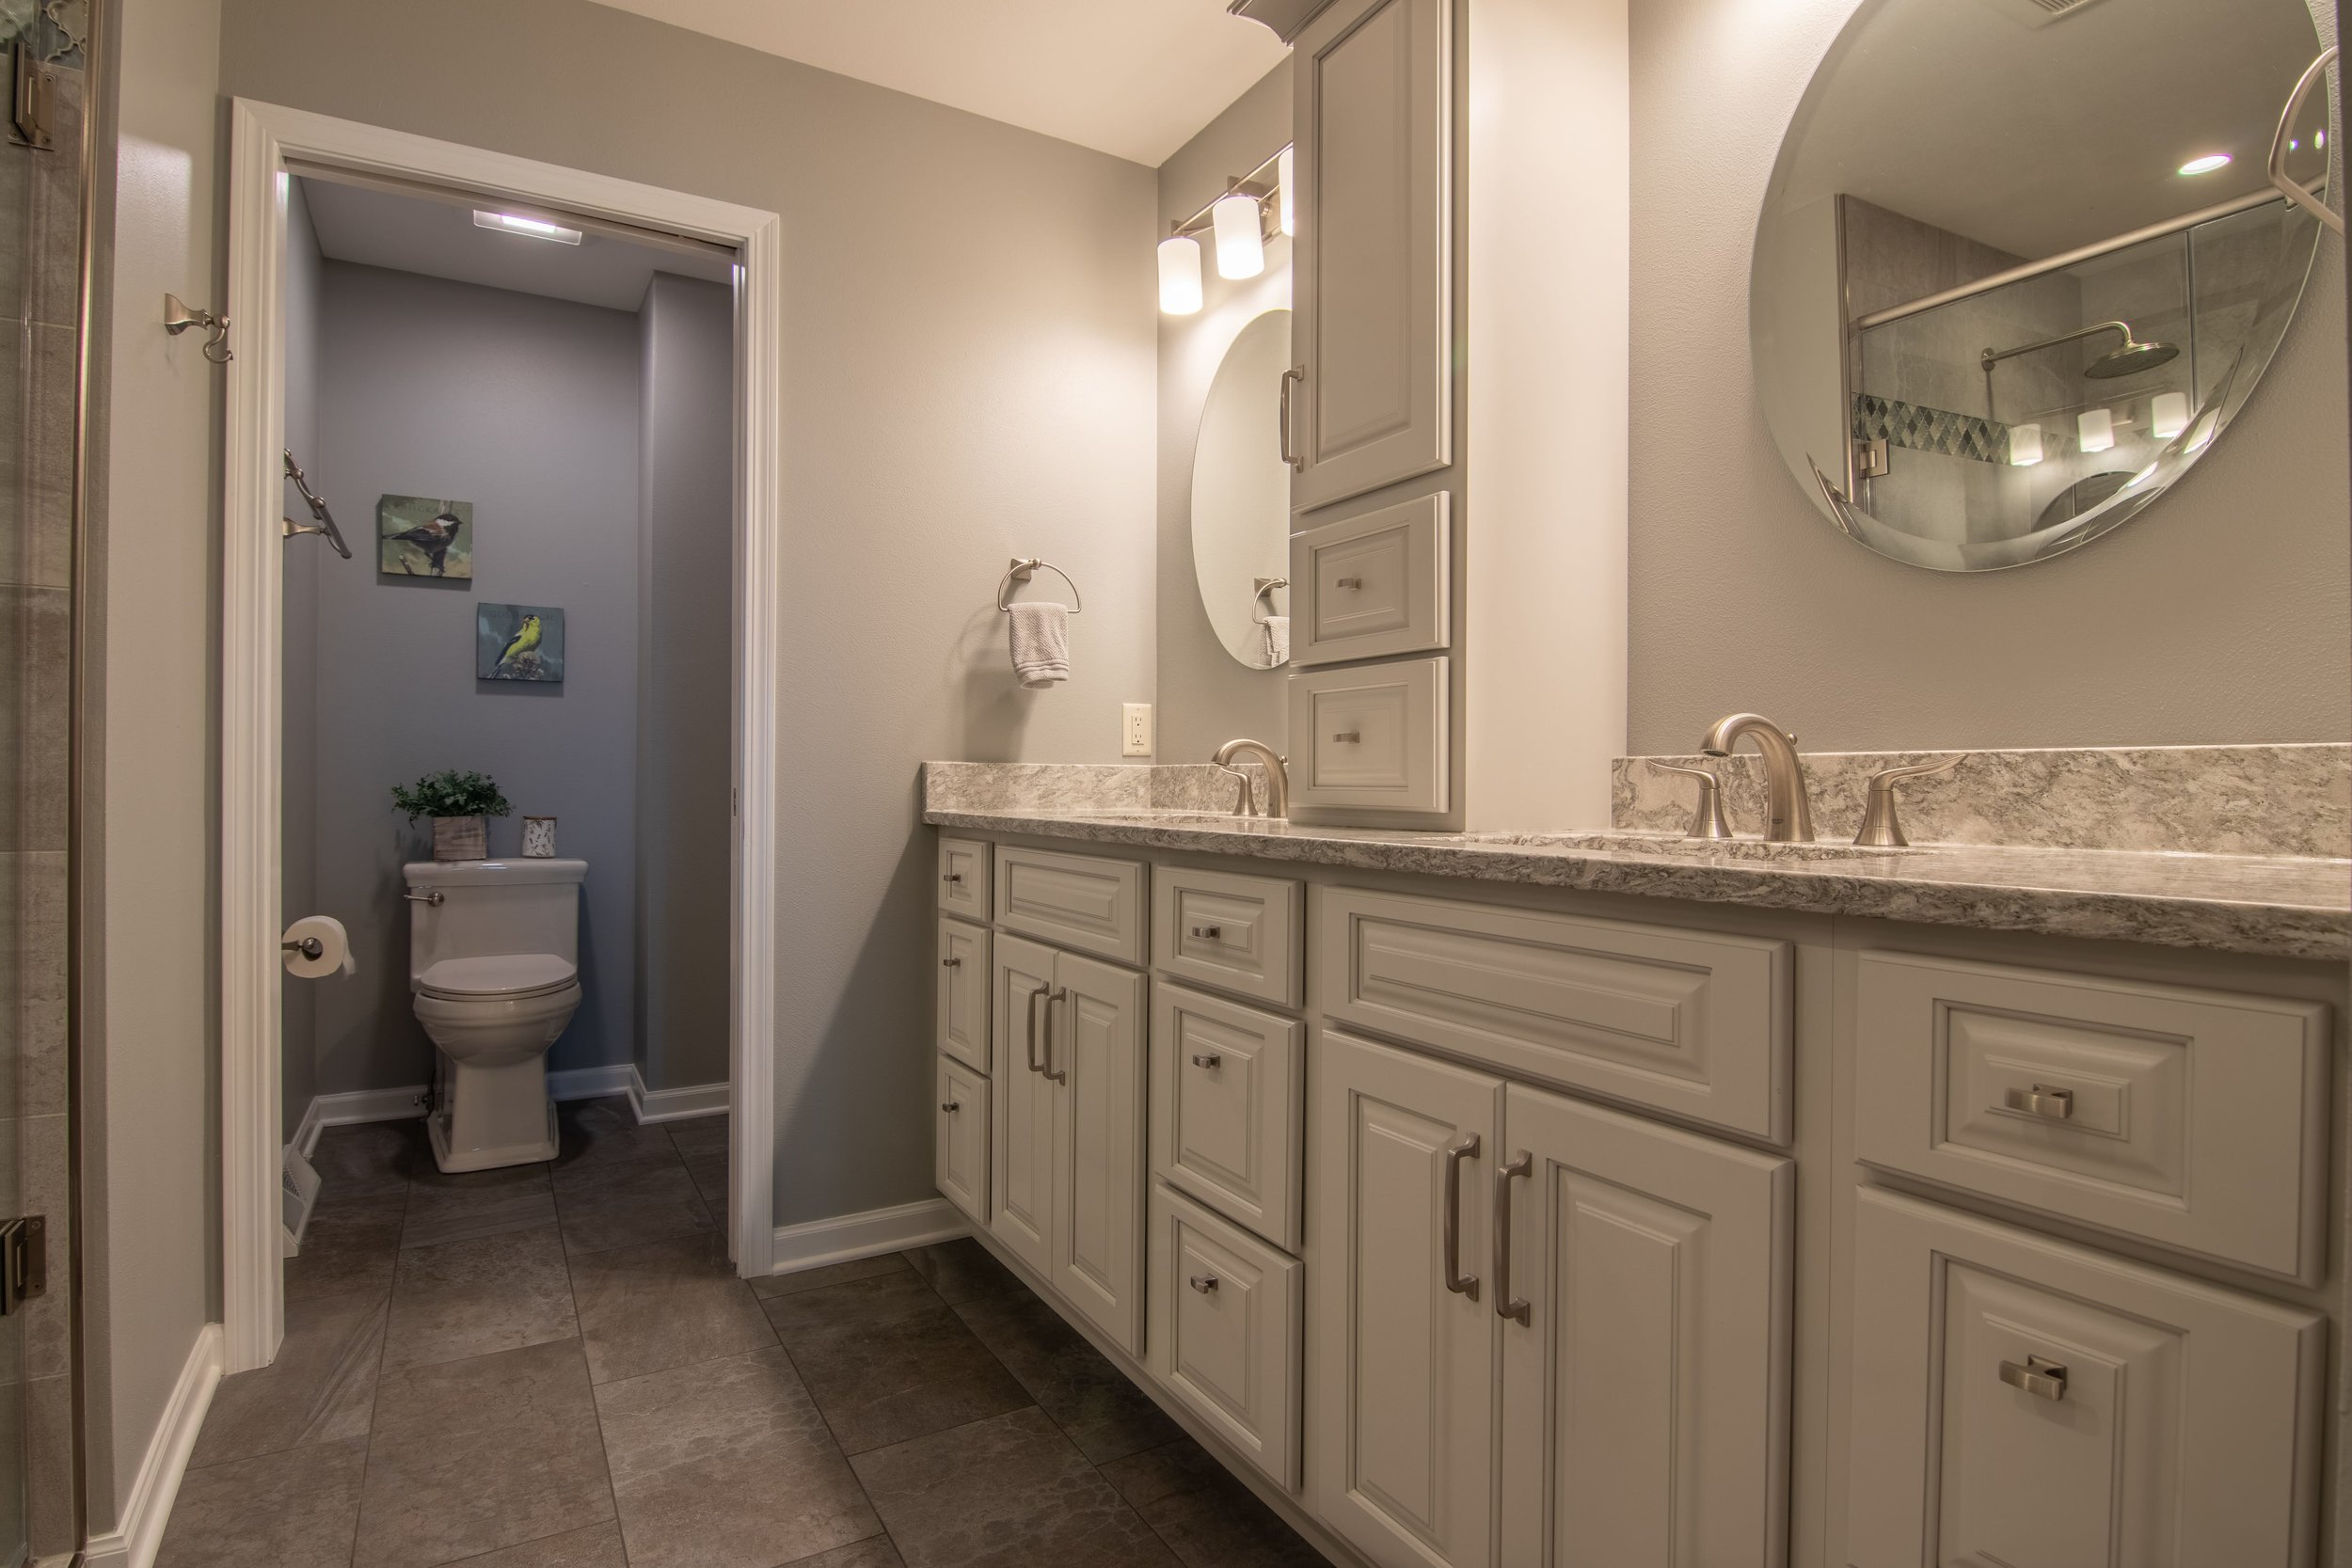 bathroom-remodel-renovate-monona-wi-10.jpg